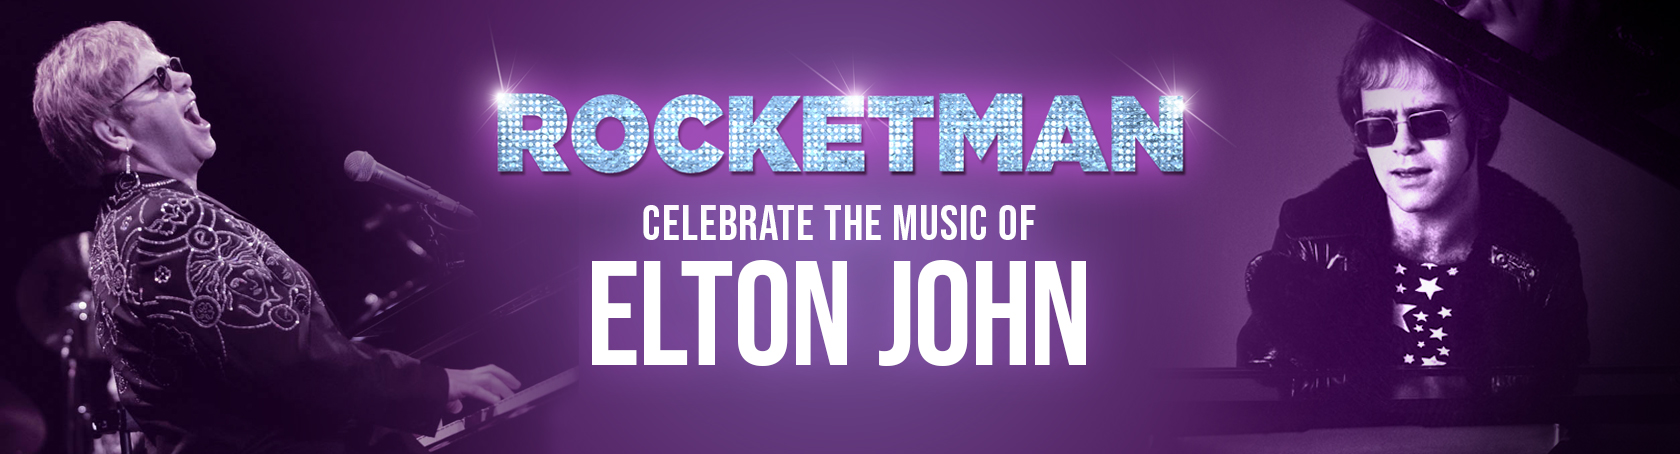 Rocketman Celebrate the Music of Elton John